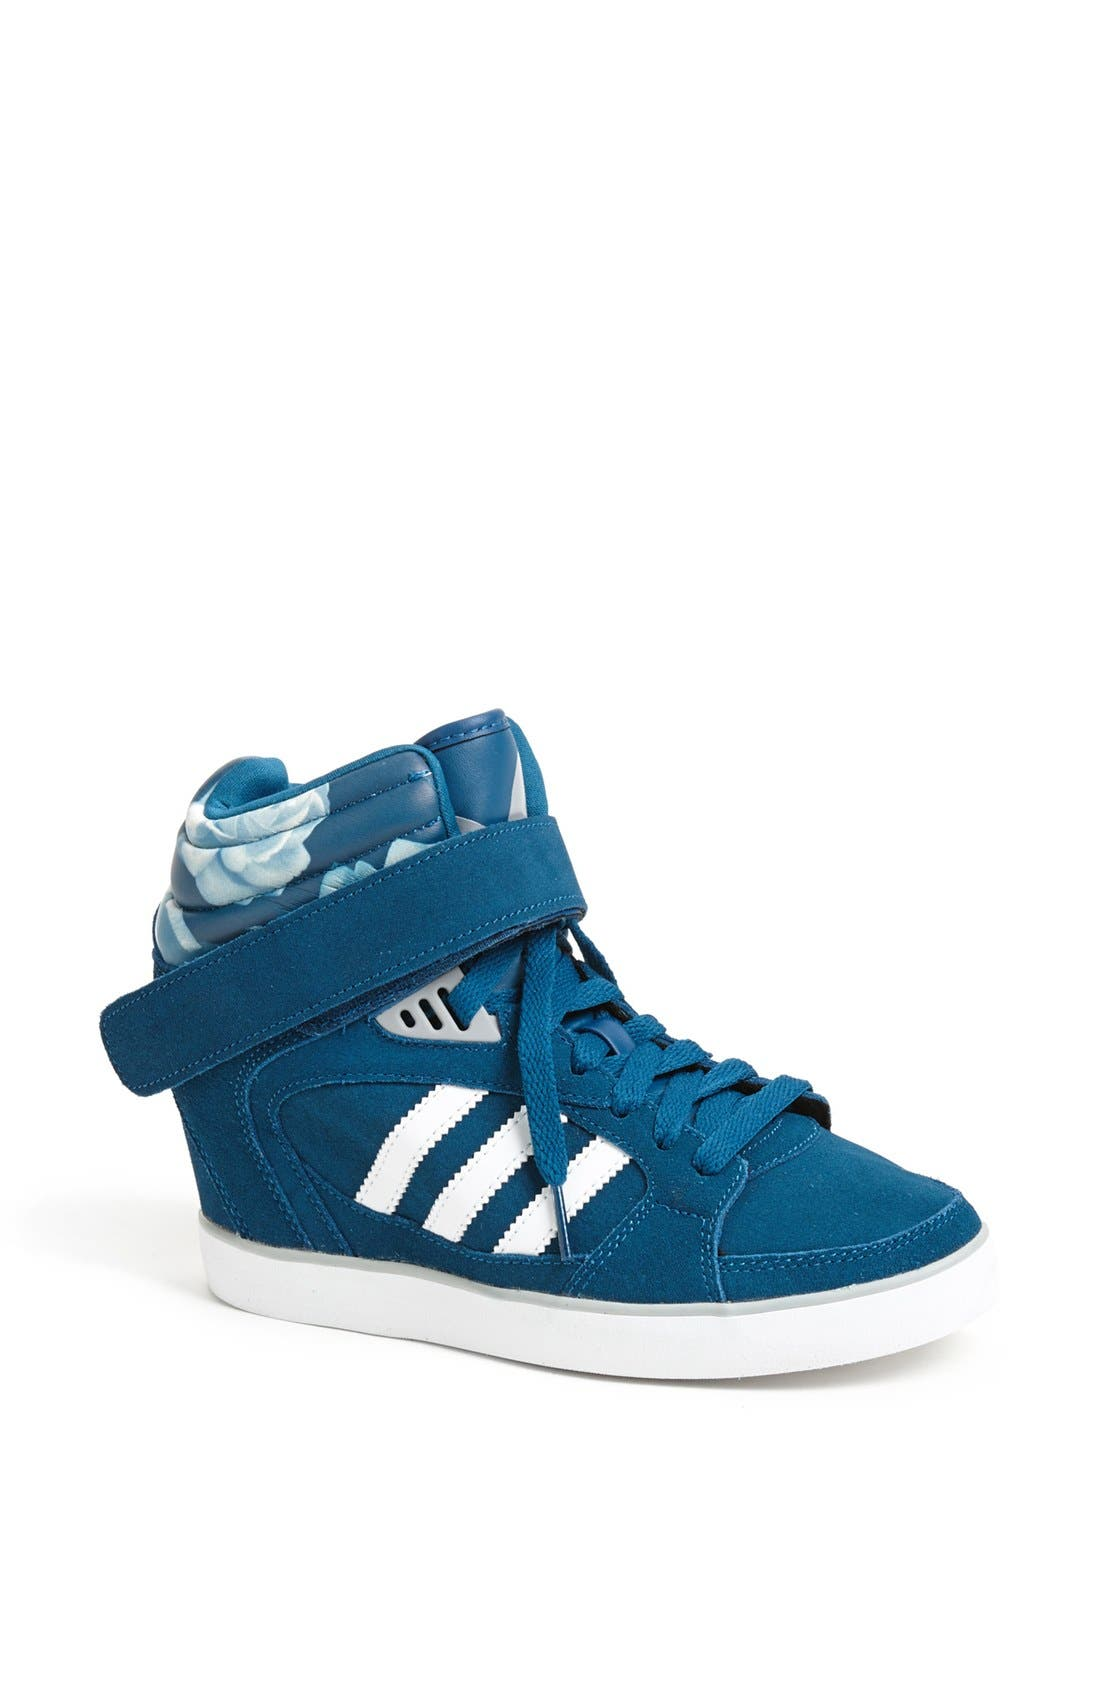 Main Image - adidas 'Amerlight' Wedge Sneaker (Women)